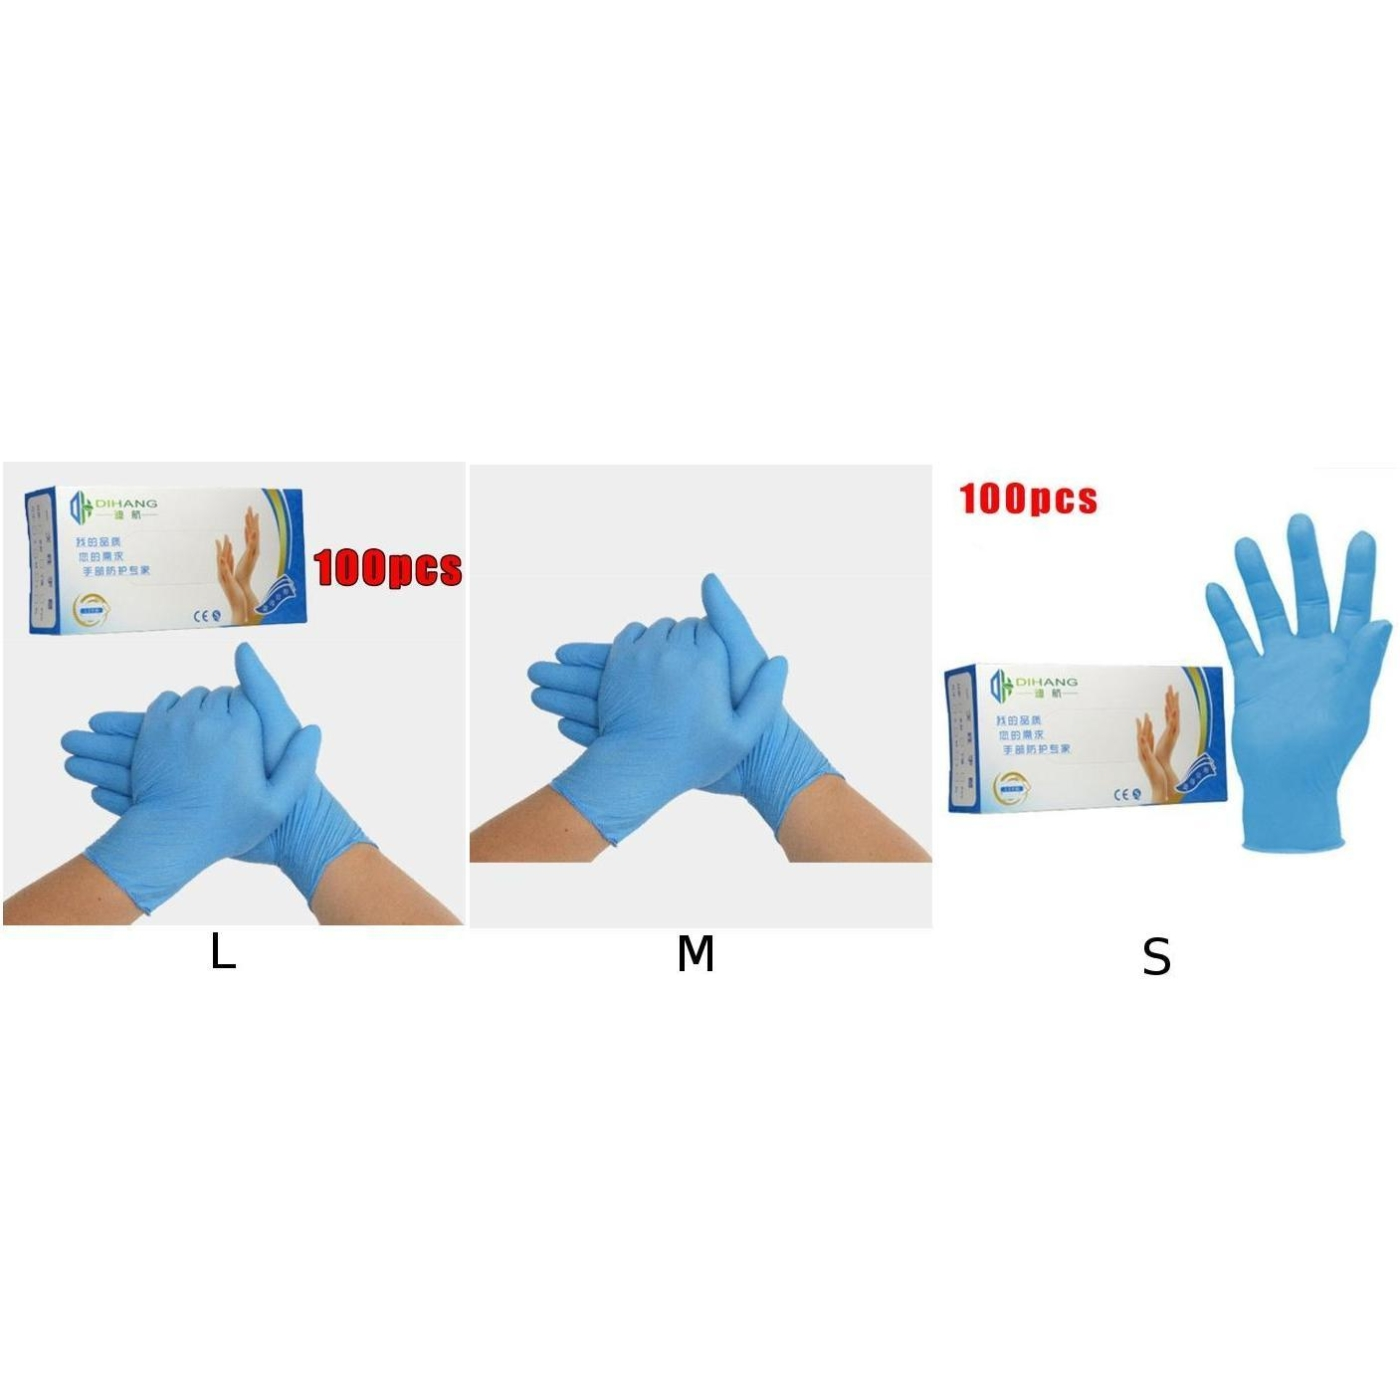 100pcs Disposable Gloves Latex Rubber Nitrile Mechanic Work Lab Exam Protector For Left And Right Hand